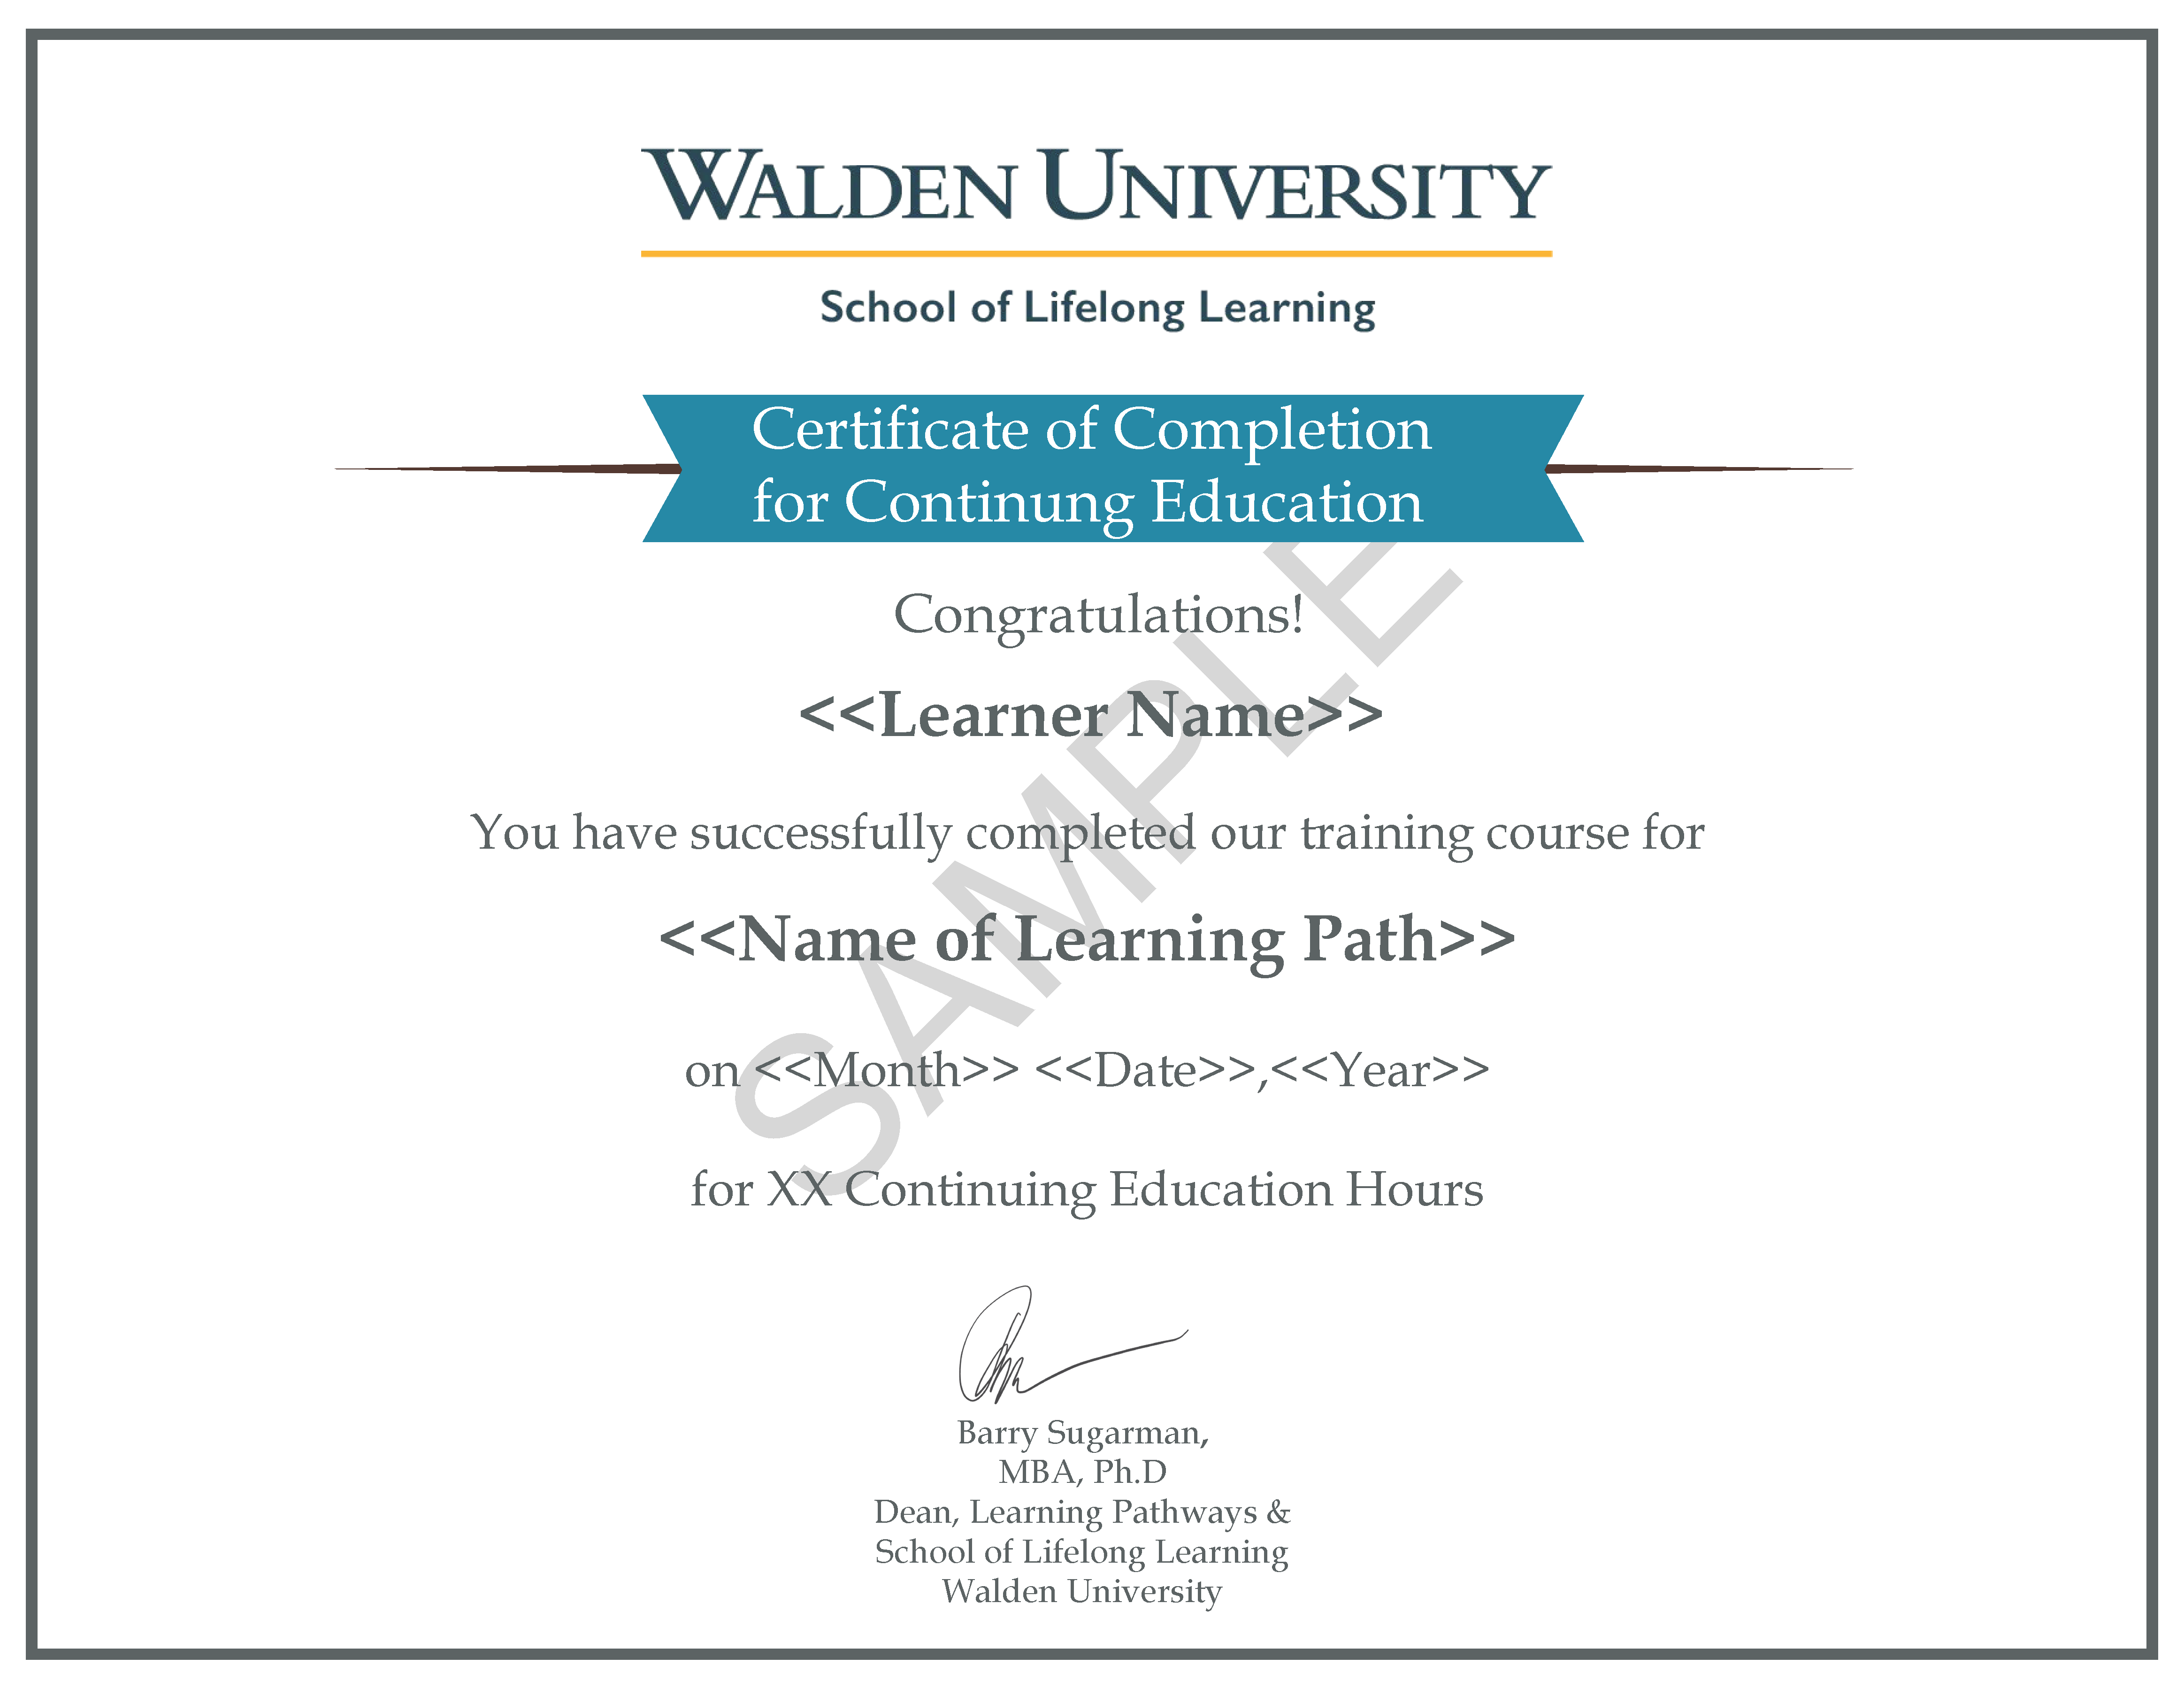 Certificate of Completion for Continuing Education